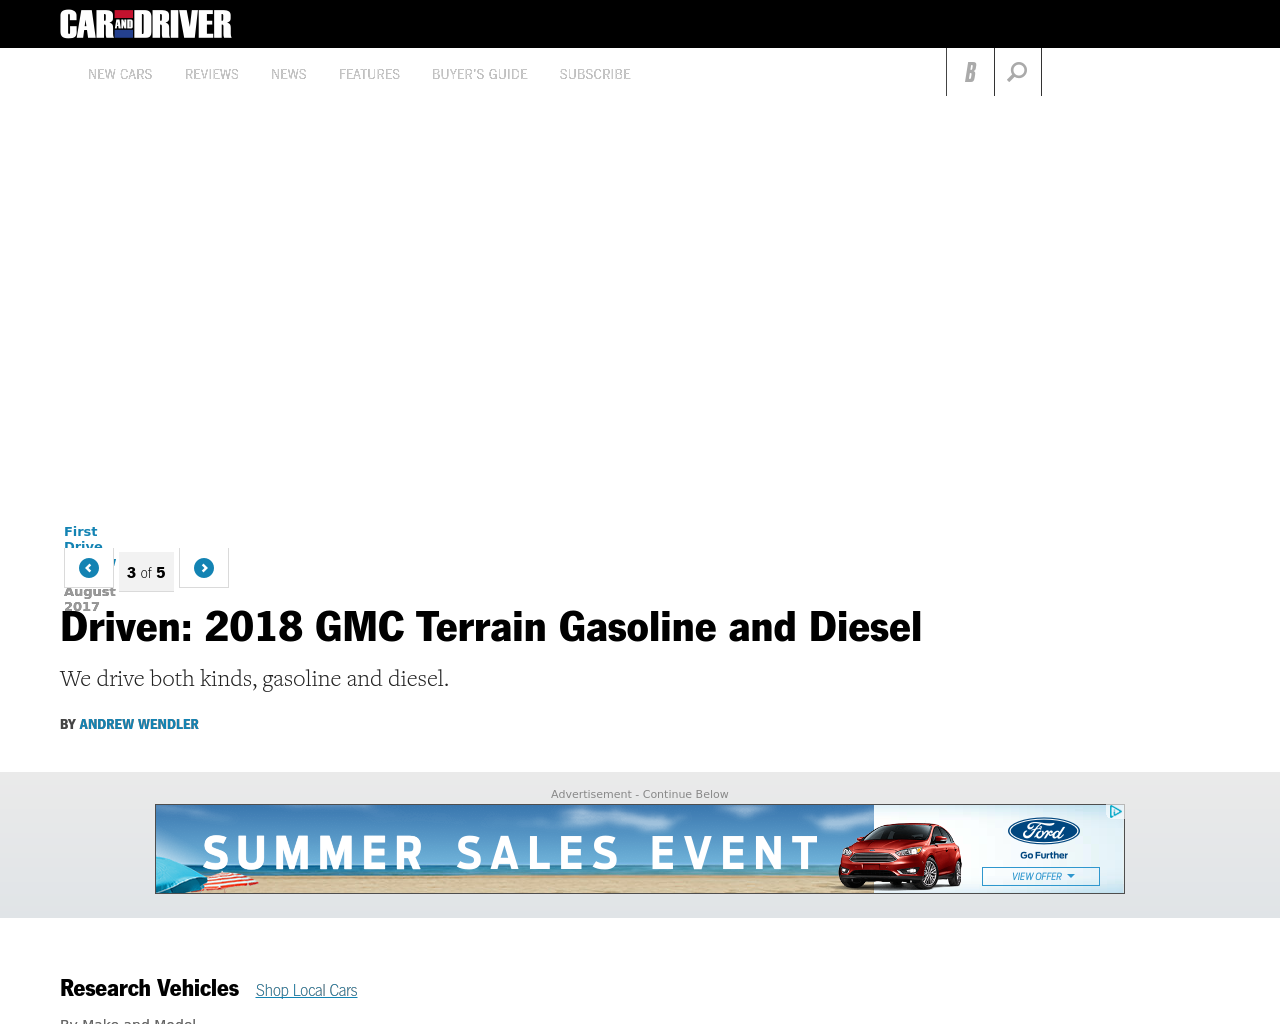 Car-and-Driver-Advertising-Reviews-Pricing